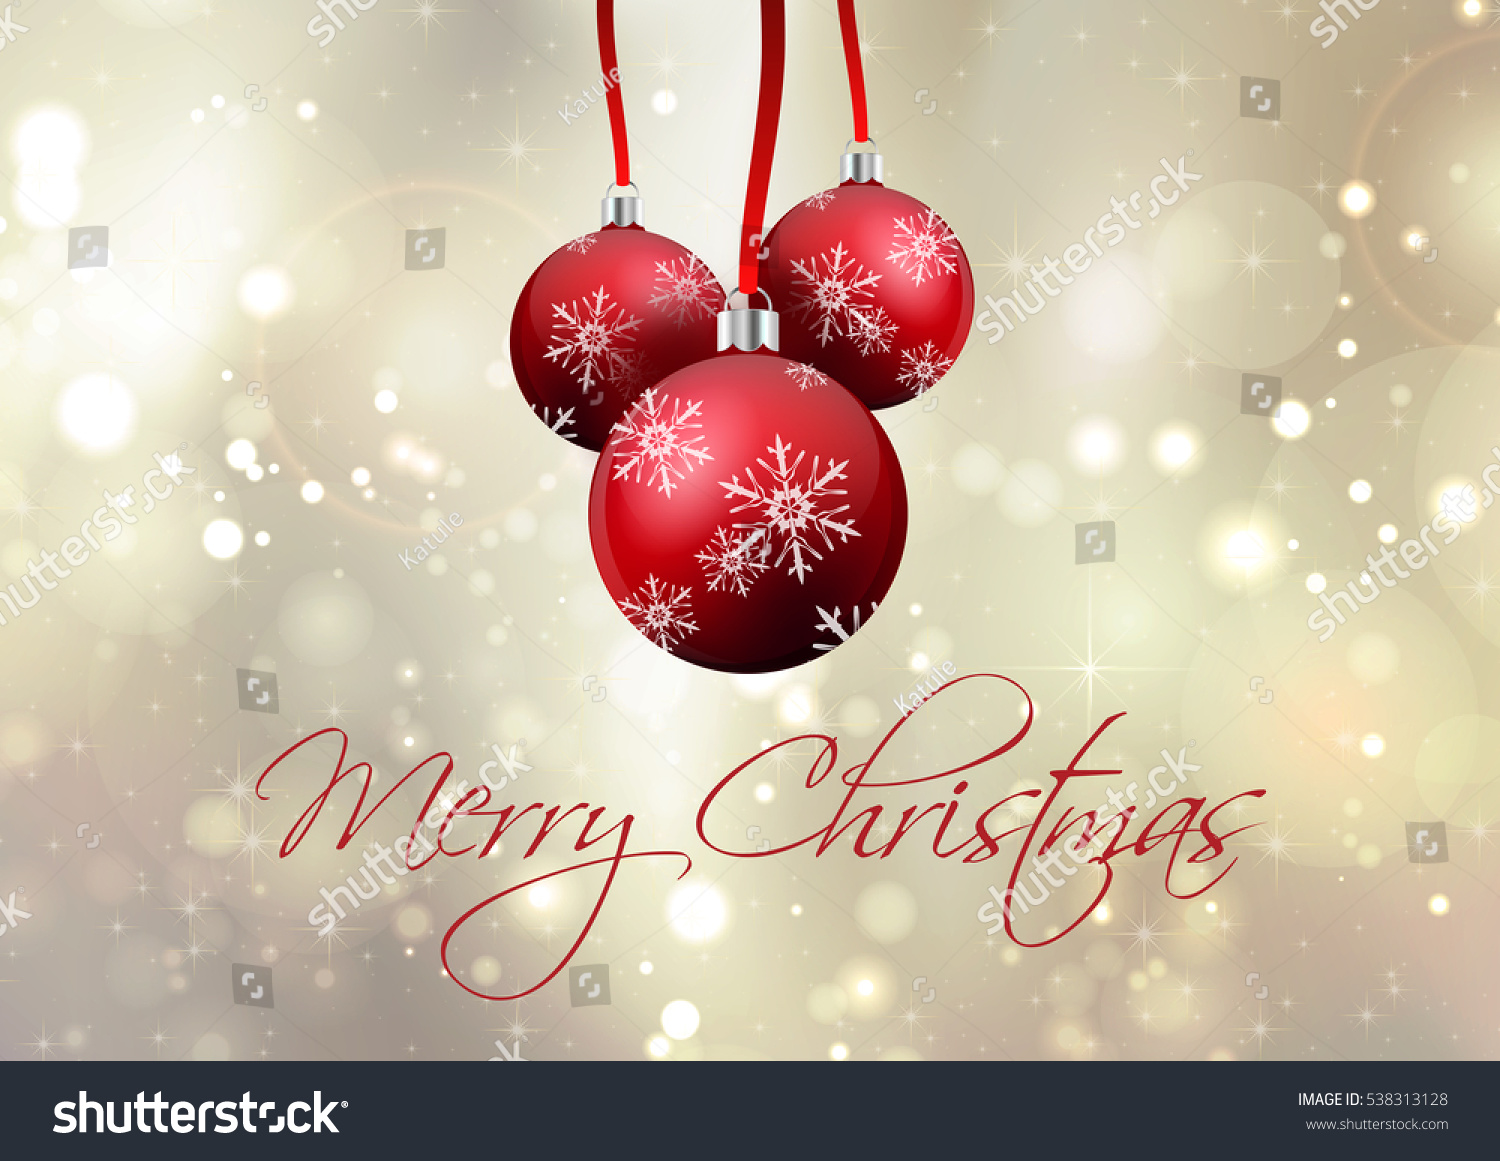 merry christmas wallpaper stock illustration 538313128 - shutterstock